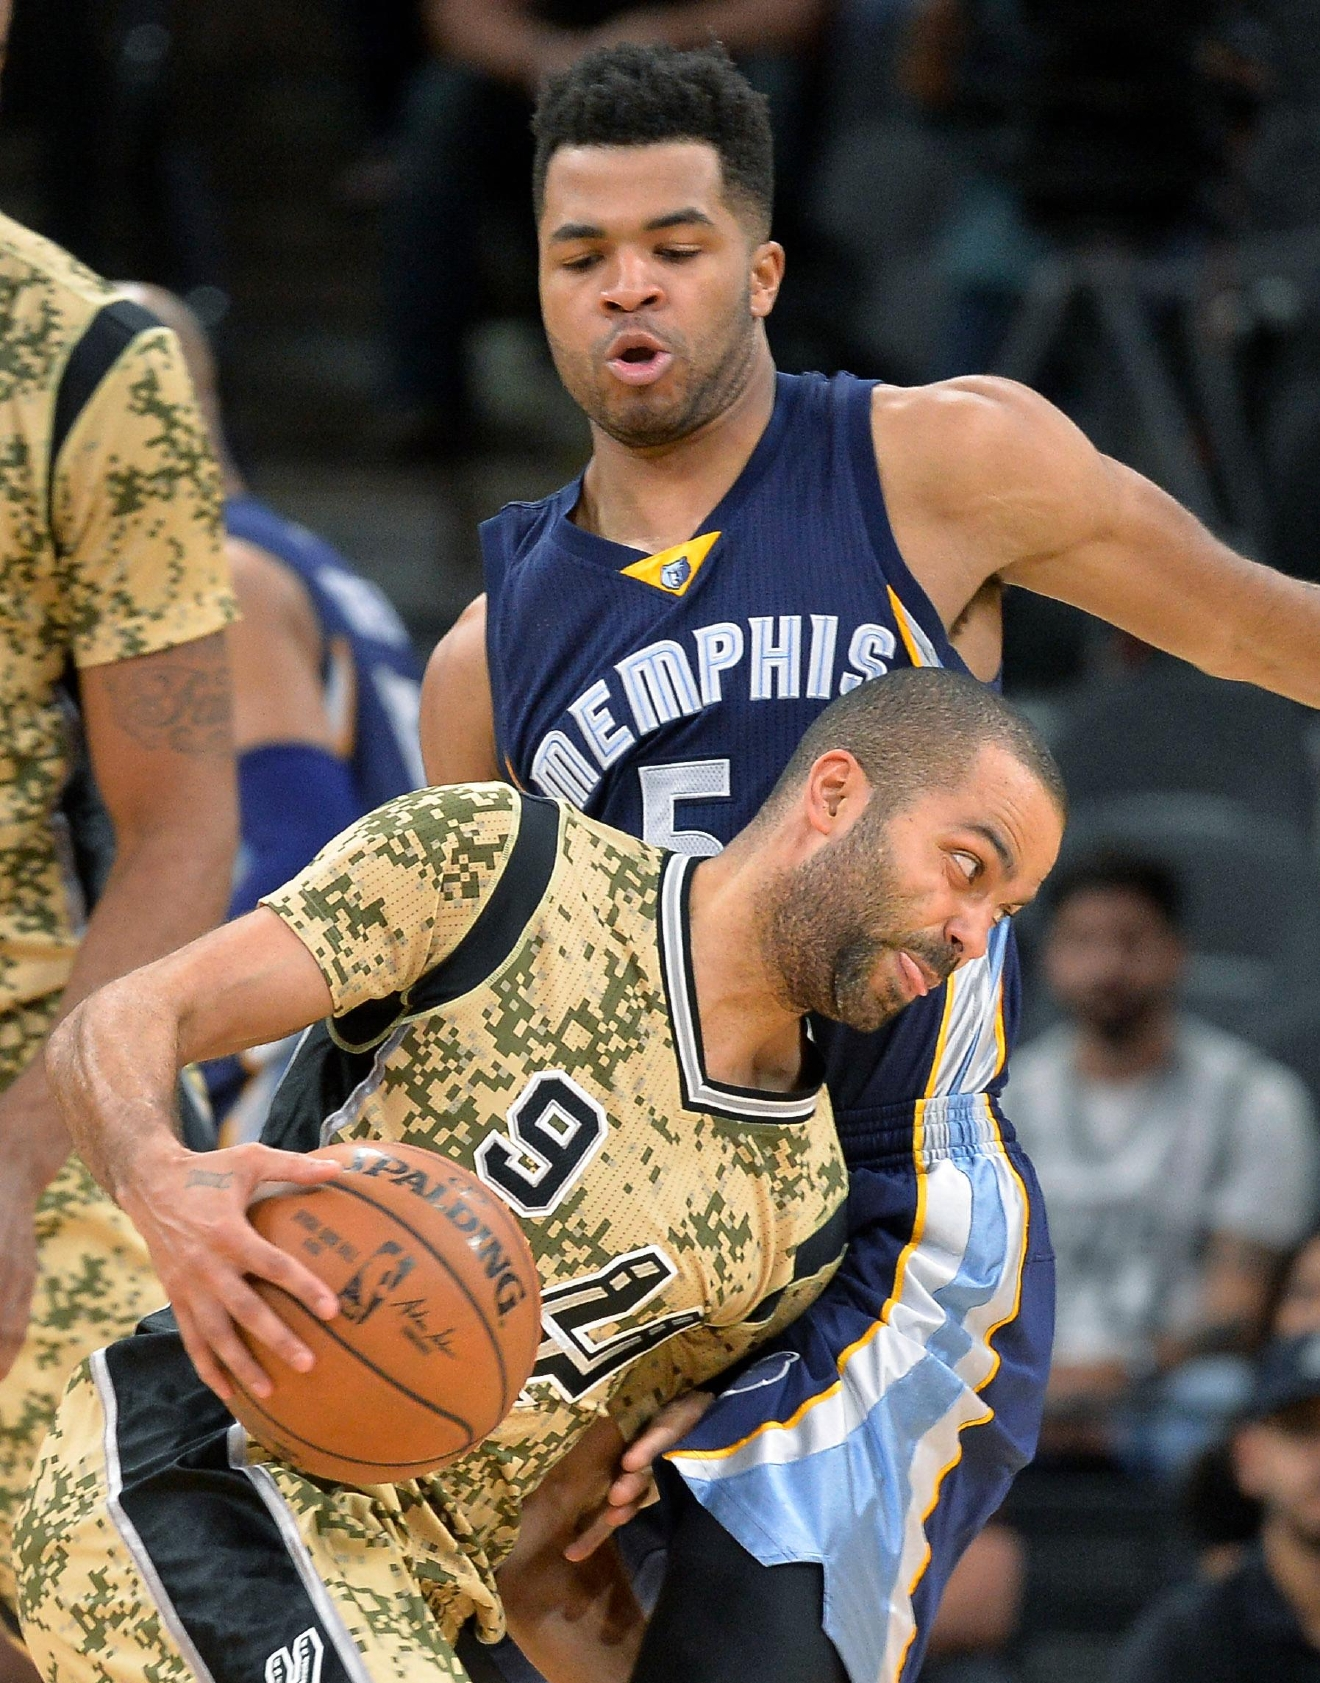 San Antonio Spurs guard Tony Parker (9), of France, drives around Memphis Grizzlies guard Andrew Harrison during the first half of an NBA basketball game, Thursday, March 23, 2017, in San Antonio. (AP Photo/Darren Abate)